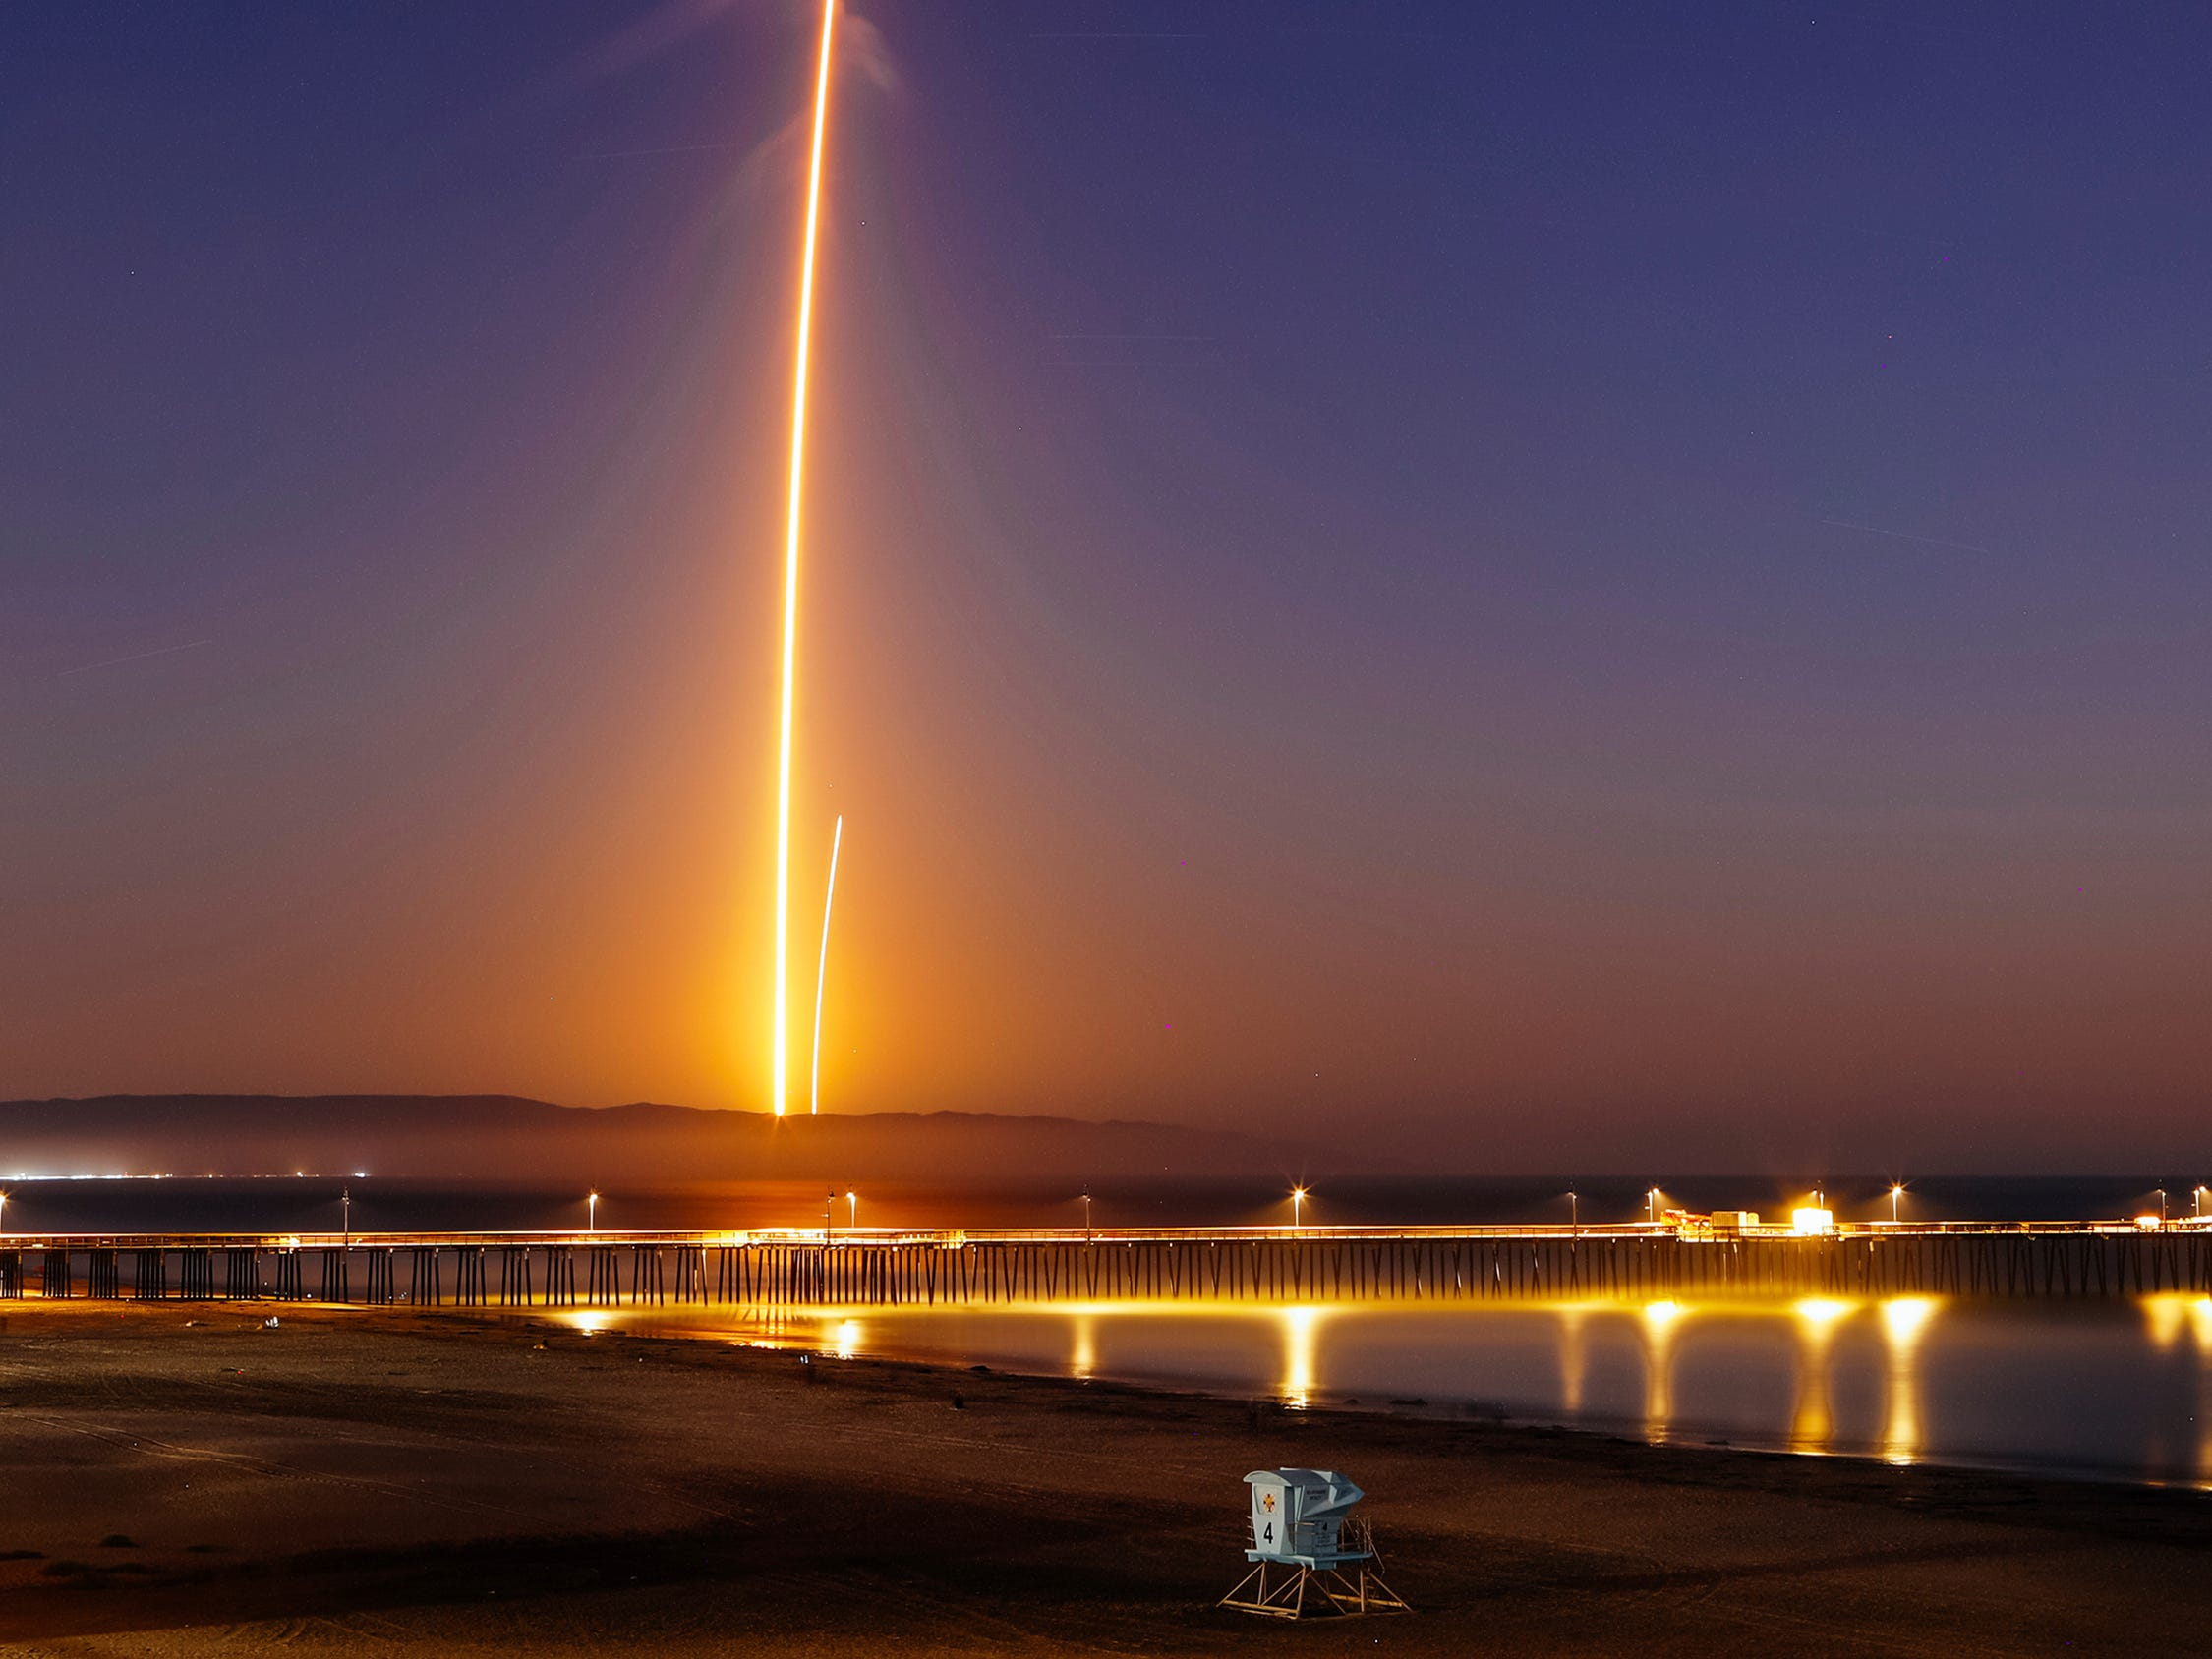 Two streaks in this long exposure photo show a SpaceX Falcon 9 rocket lifting off  from Vandenberg Air Force Base, as seen from Pismo Beach, Calif., on Sunday, Oct. 7, 2018, and then its first stage returning (right) to Earth at a nearby landing pad.